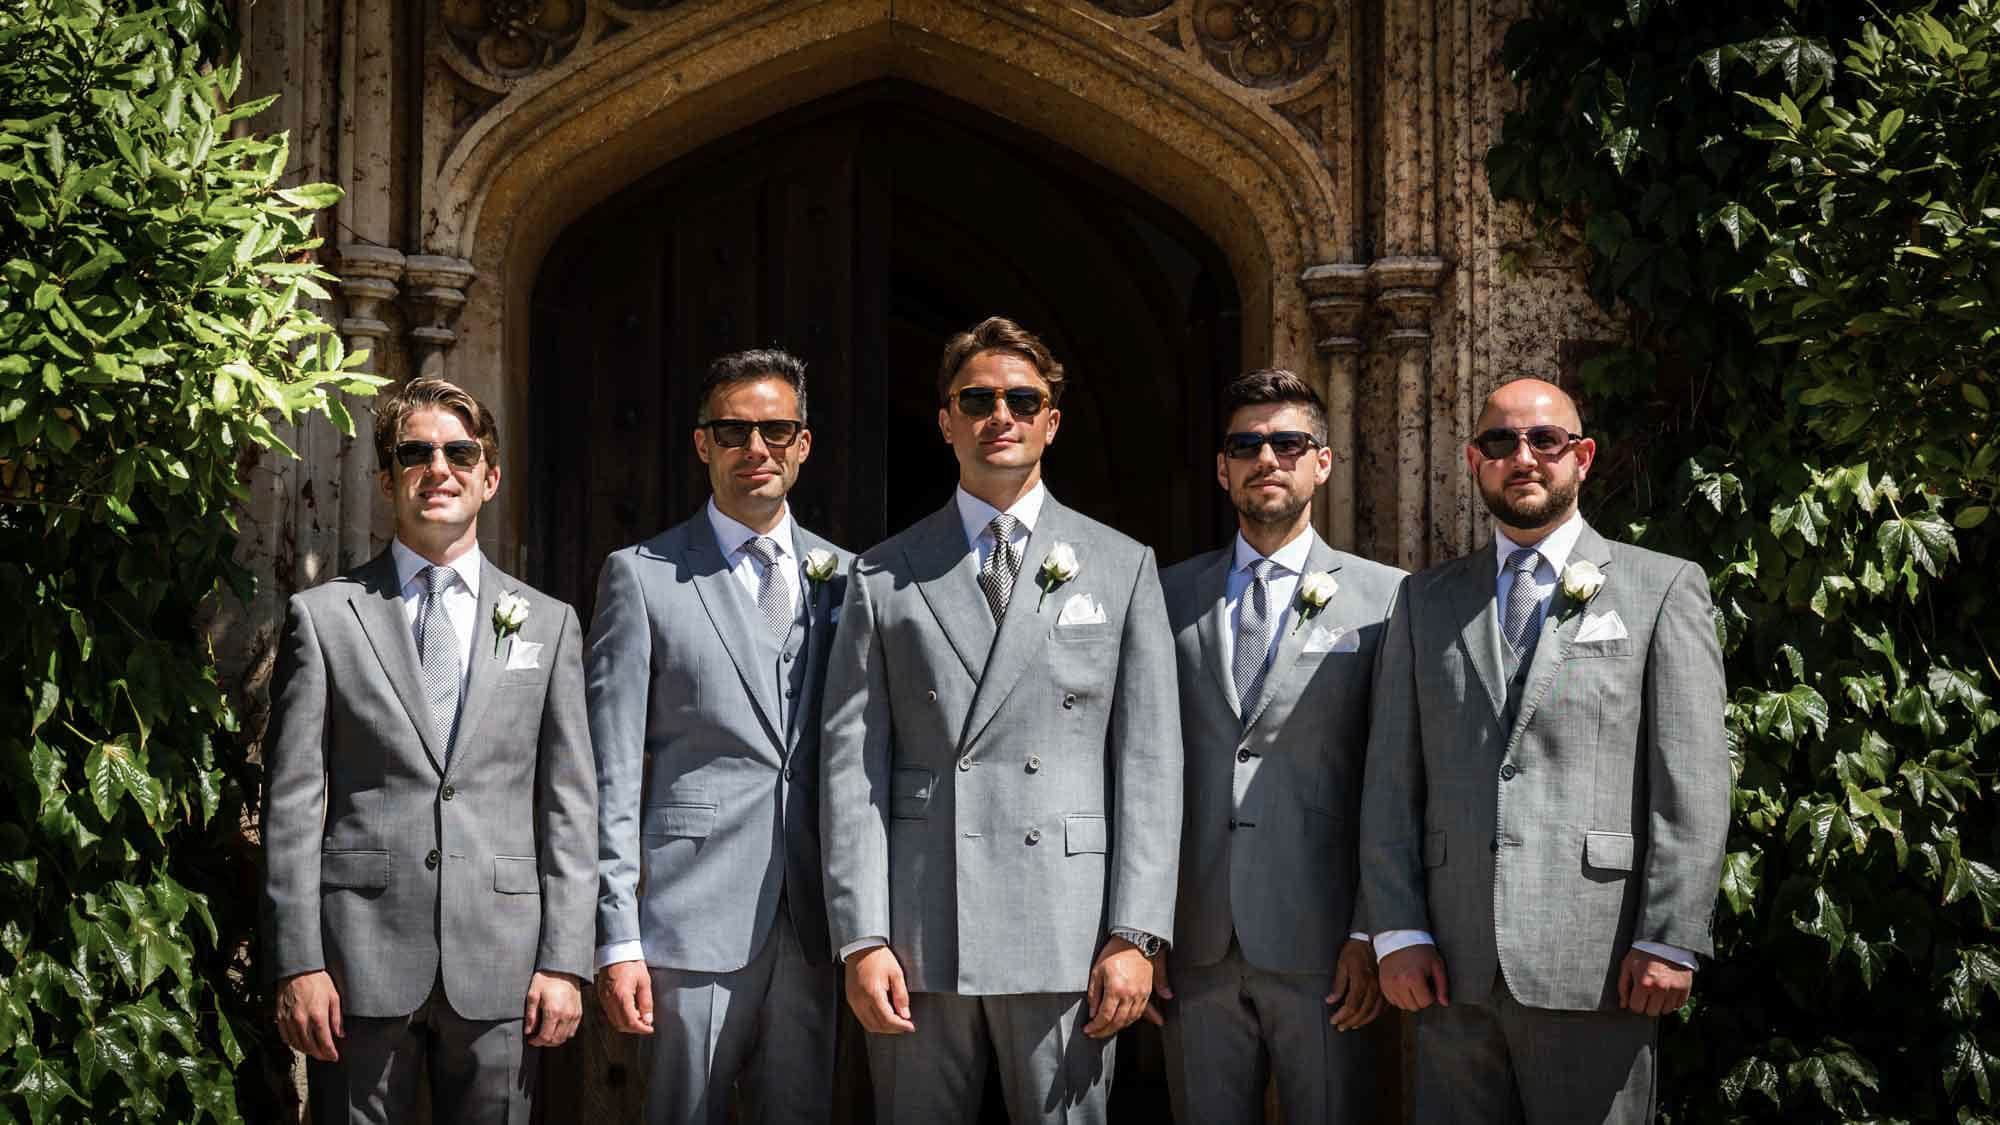 Oli and the groomsmen at St Audries Park